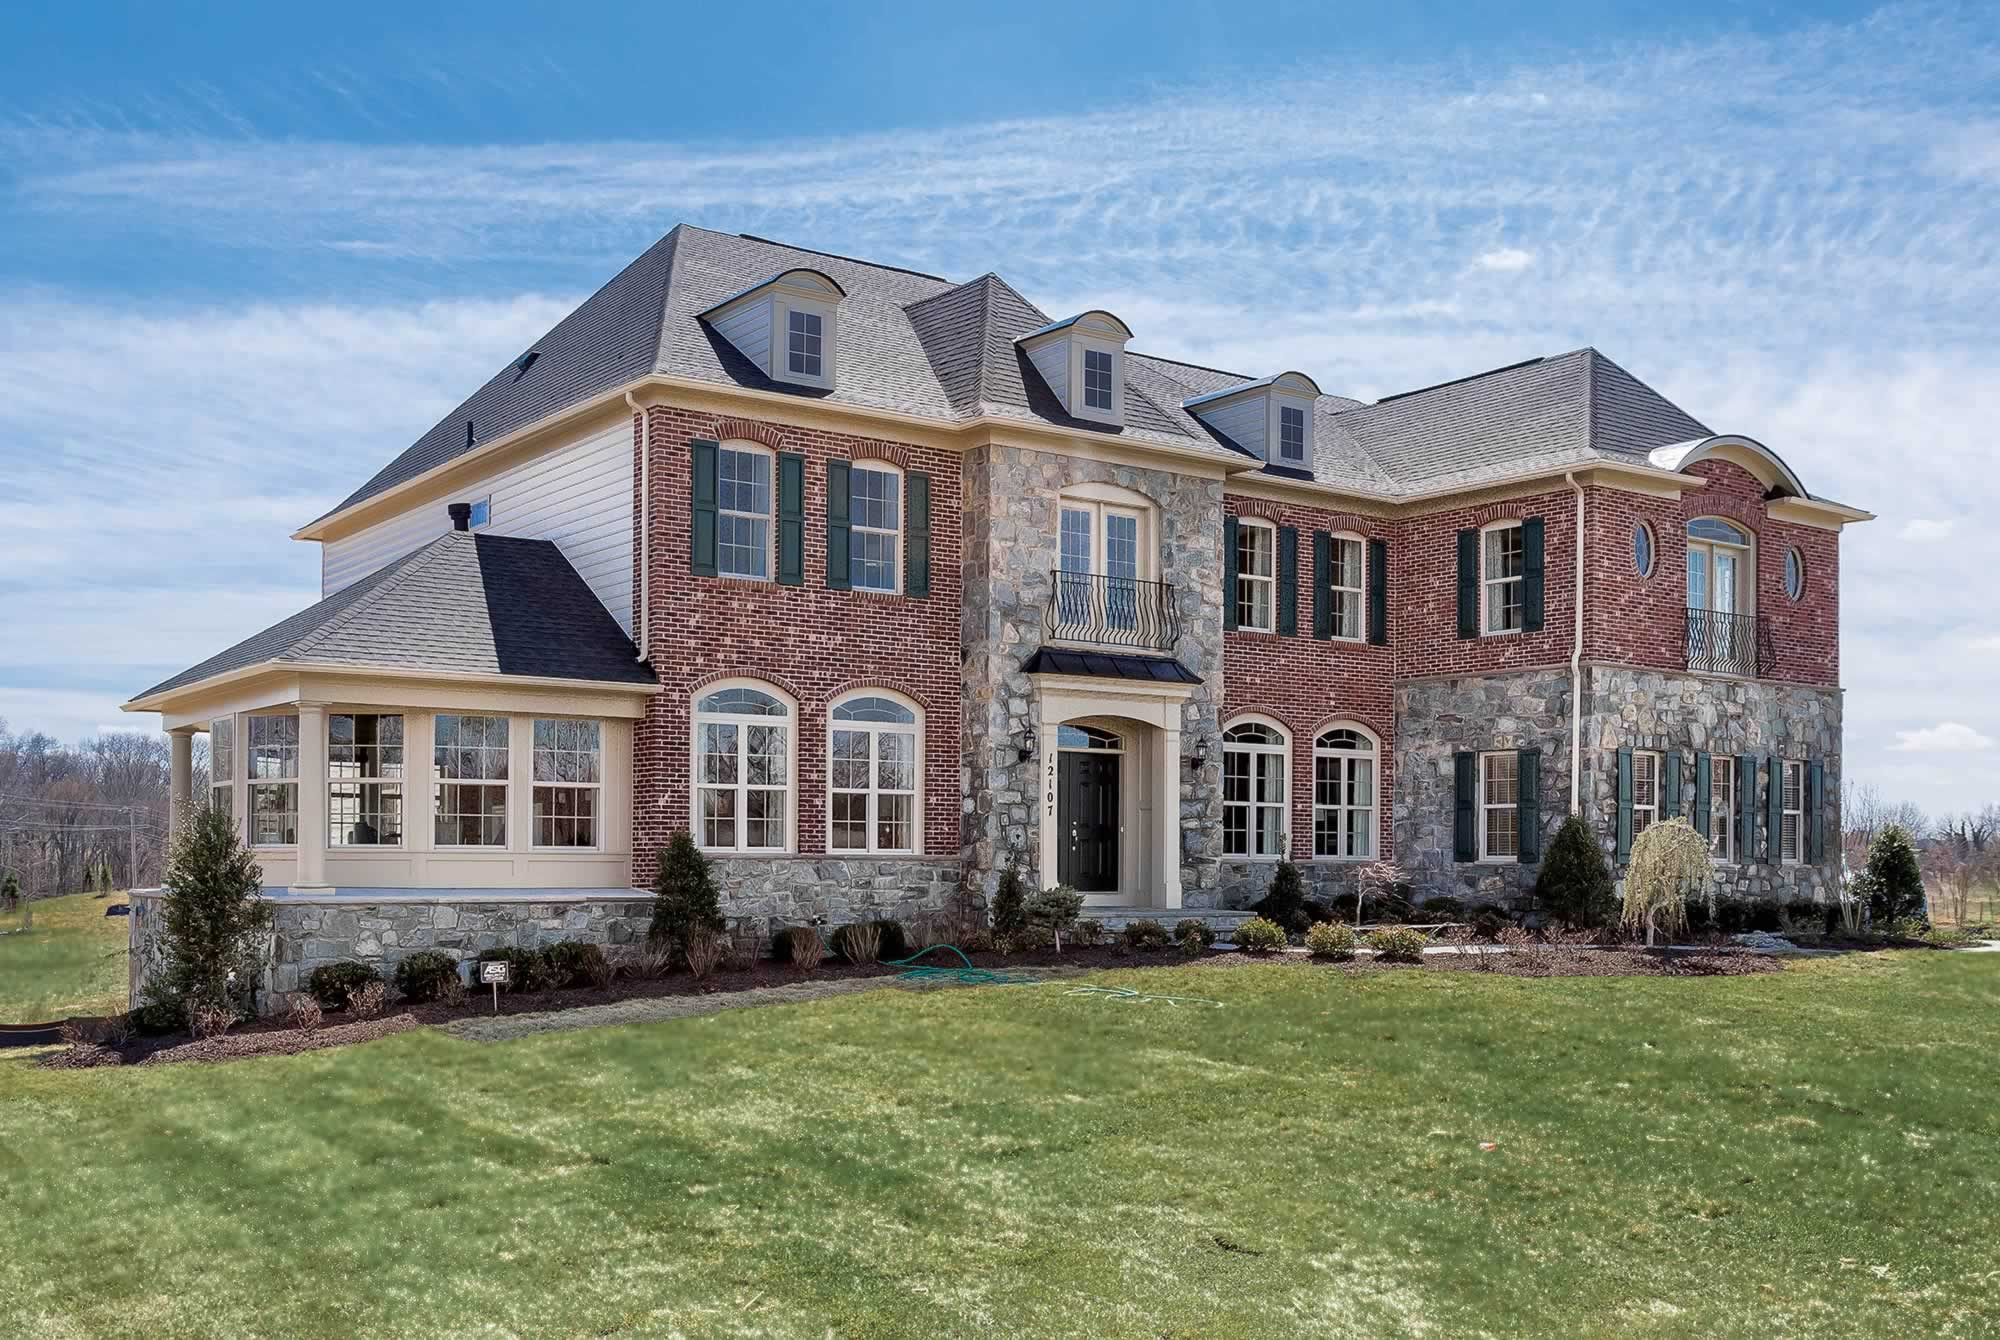 Single Family for Sale at Walnut Creek-The Oakmont 12107 Hayland Farm Way Ellicott City, Maryland 21042 United States